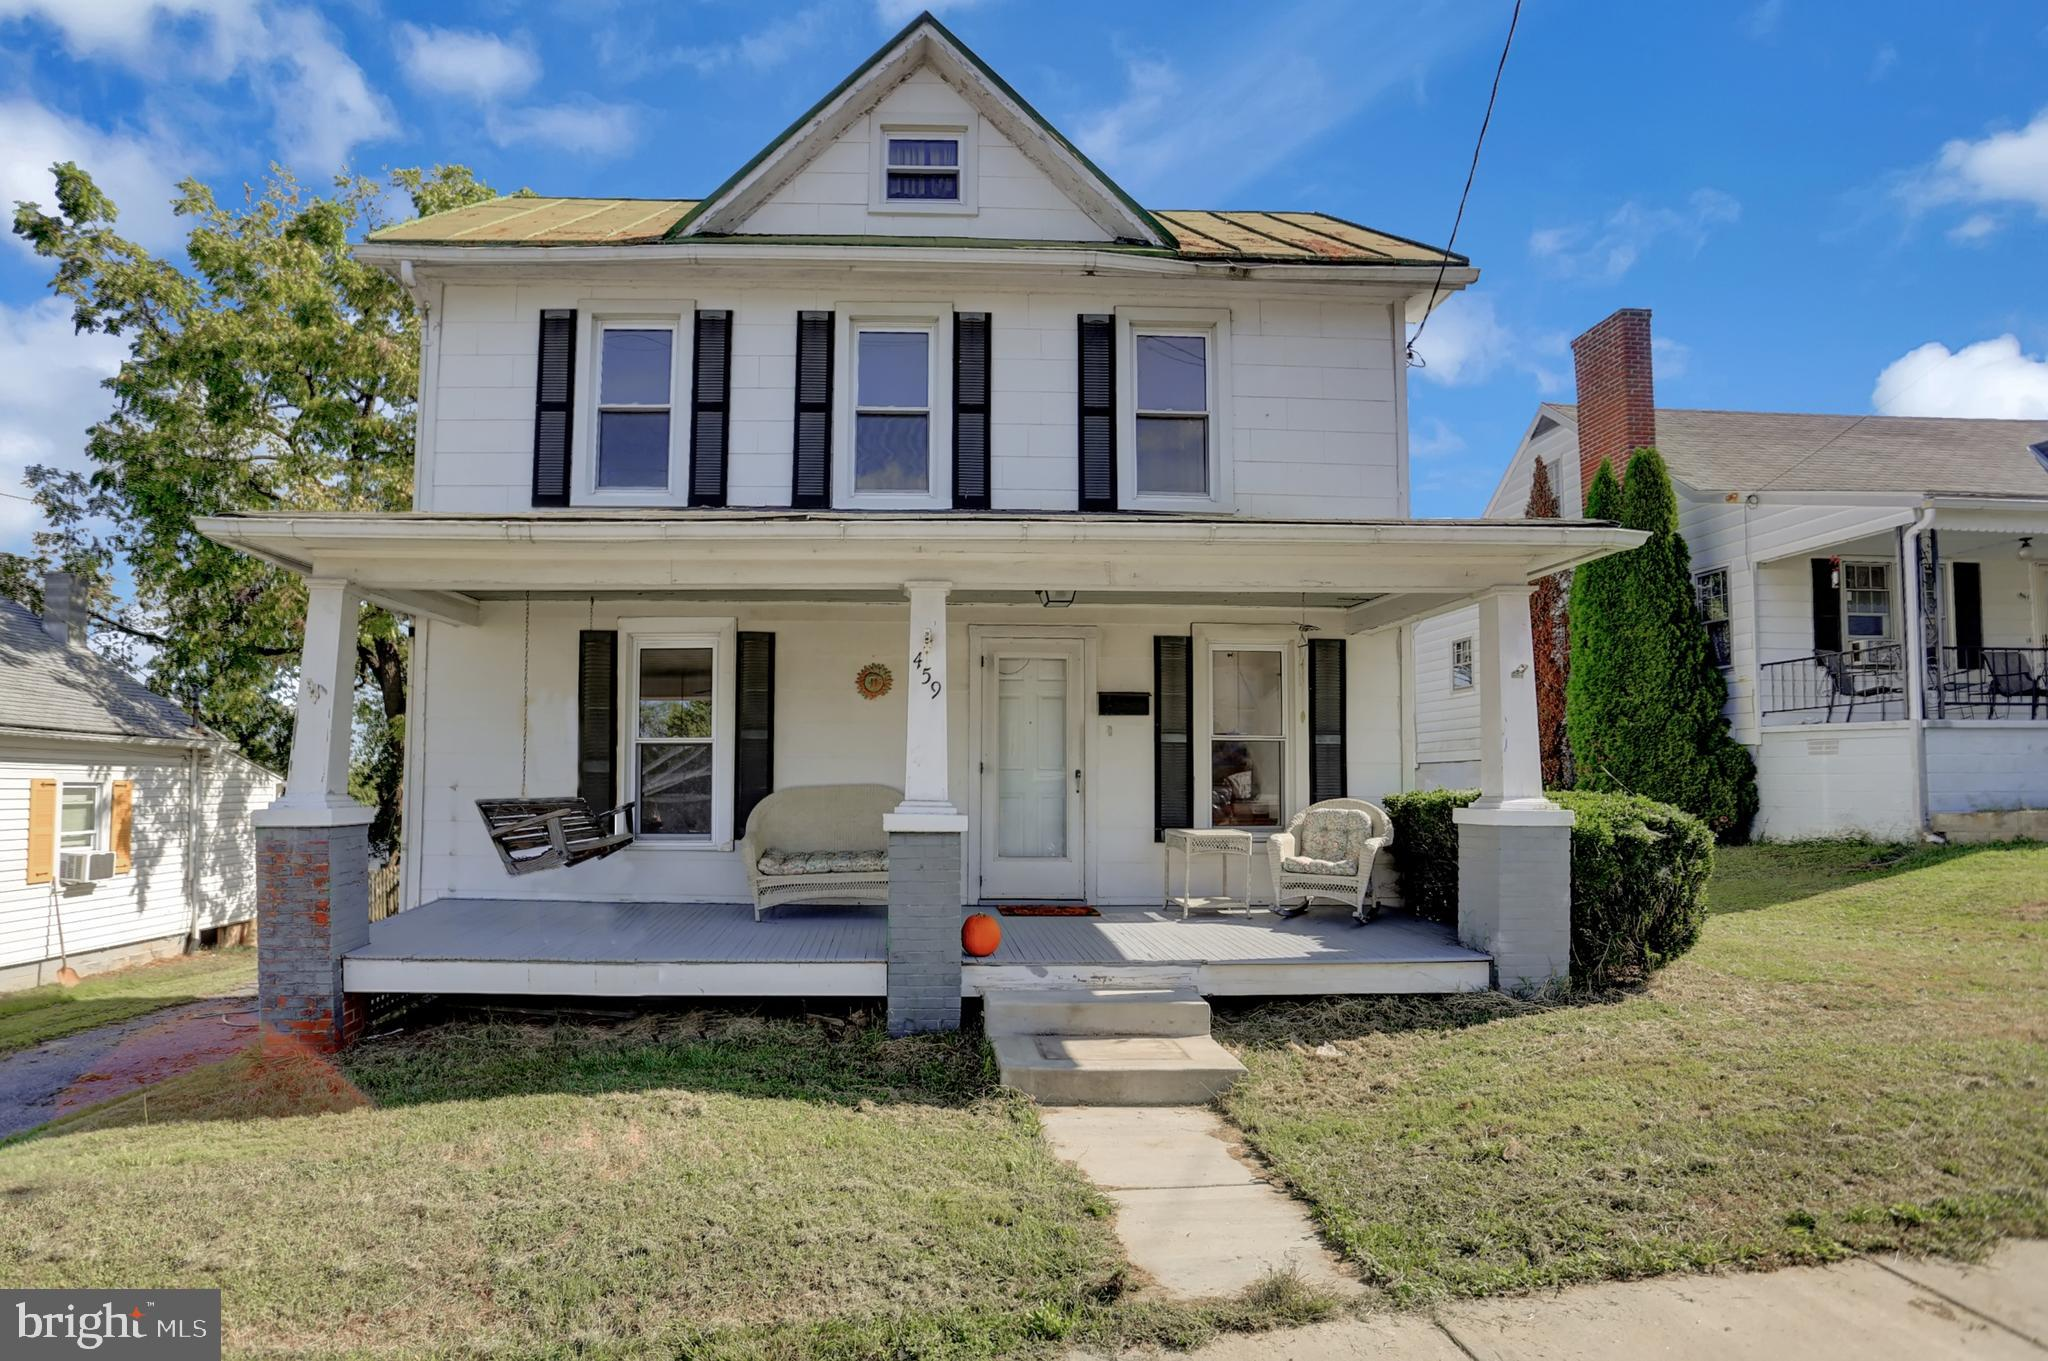 WELL CARED FOR 2/3 BD & DEN 1.5 BA COLONIAL. FENCED BACK YARD, BSMT PAINTED & FURNACE JUST SERVICED.